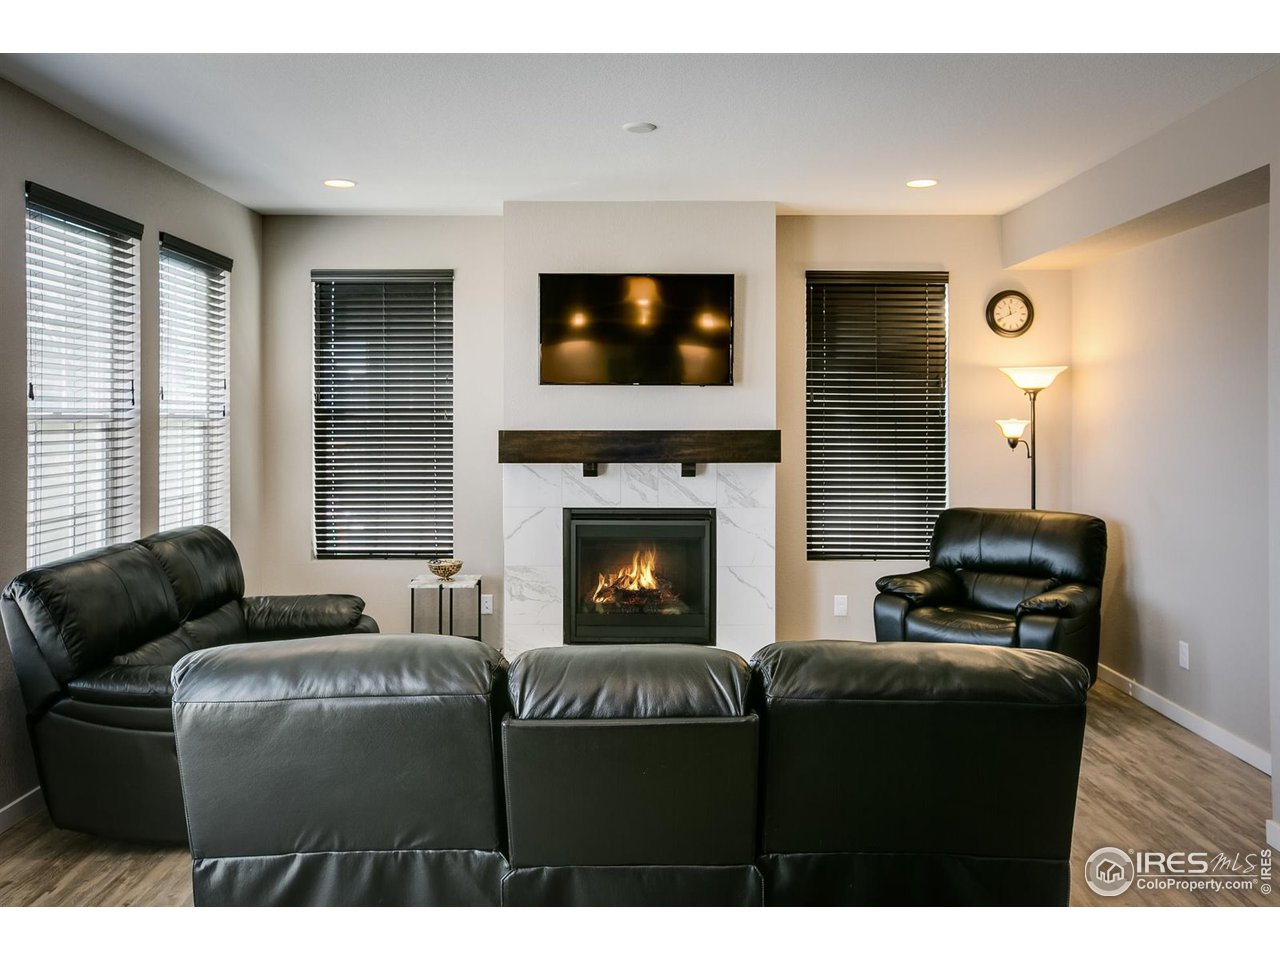 Gas Fireplace with Tile Surround